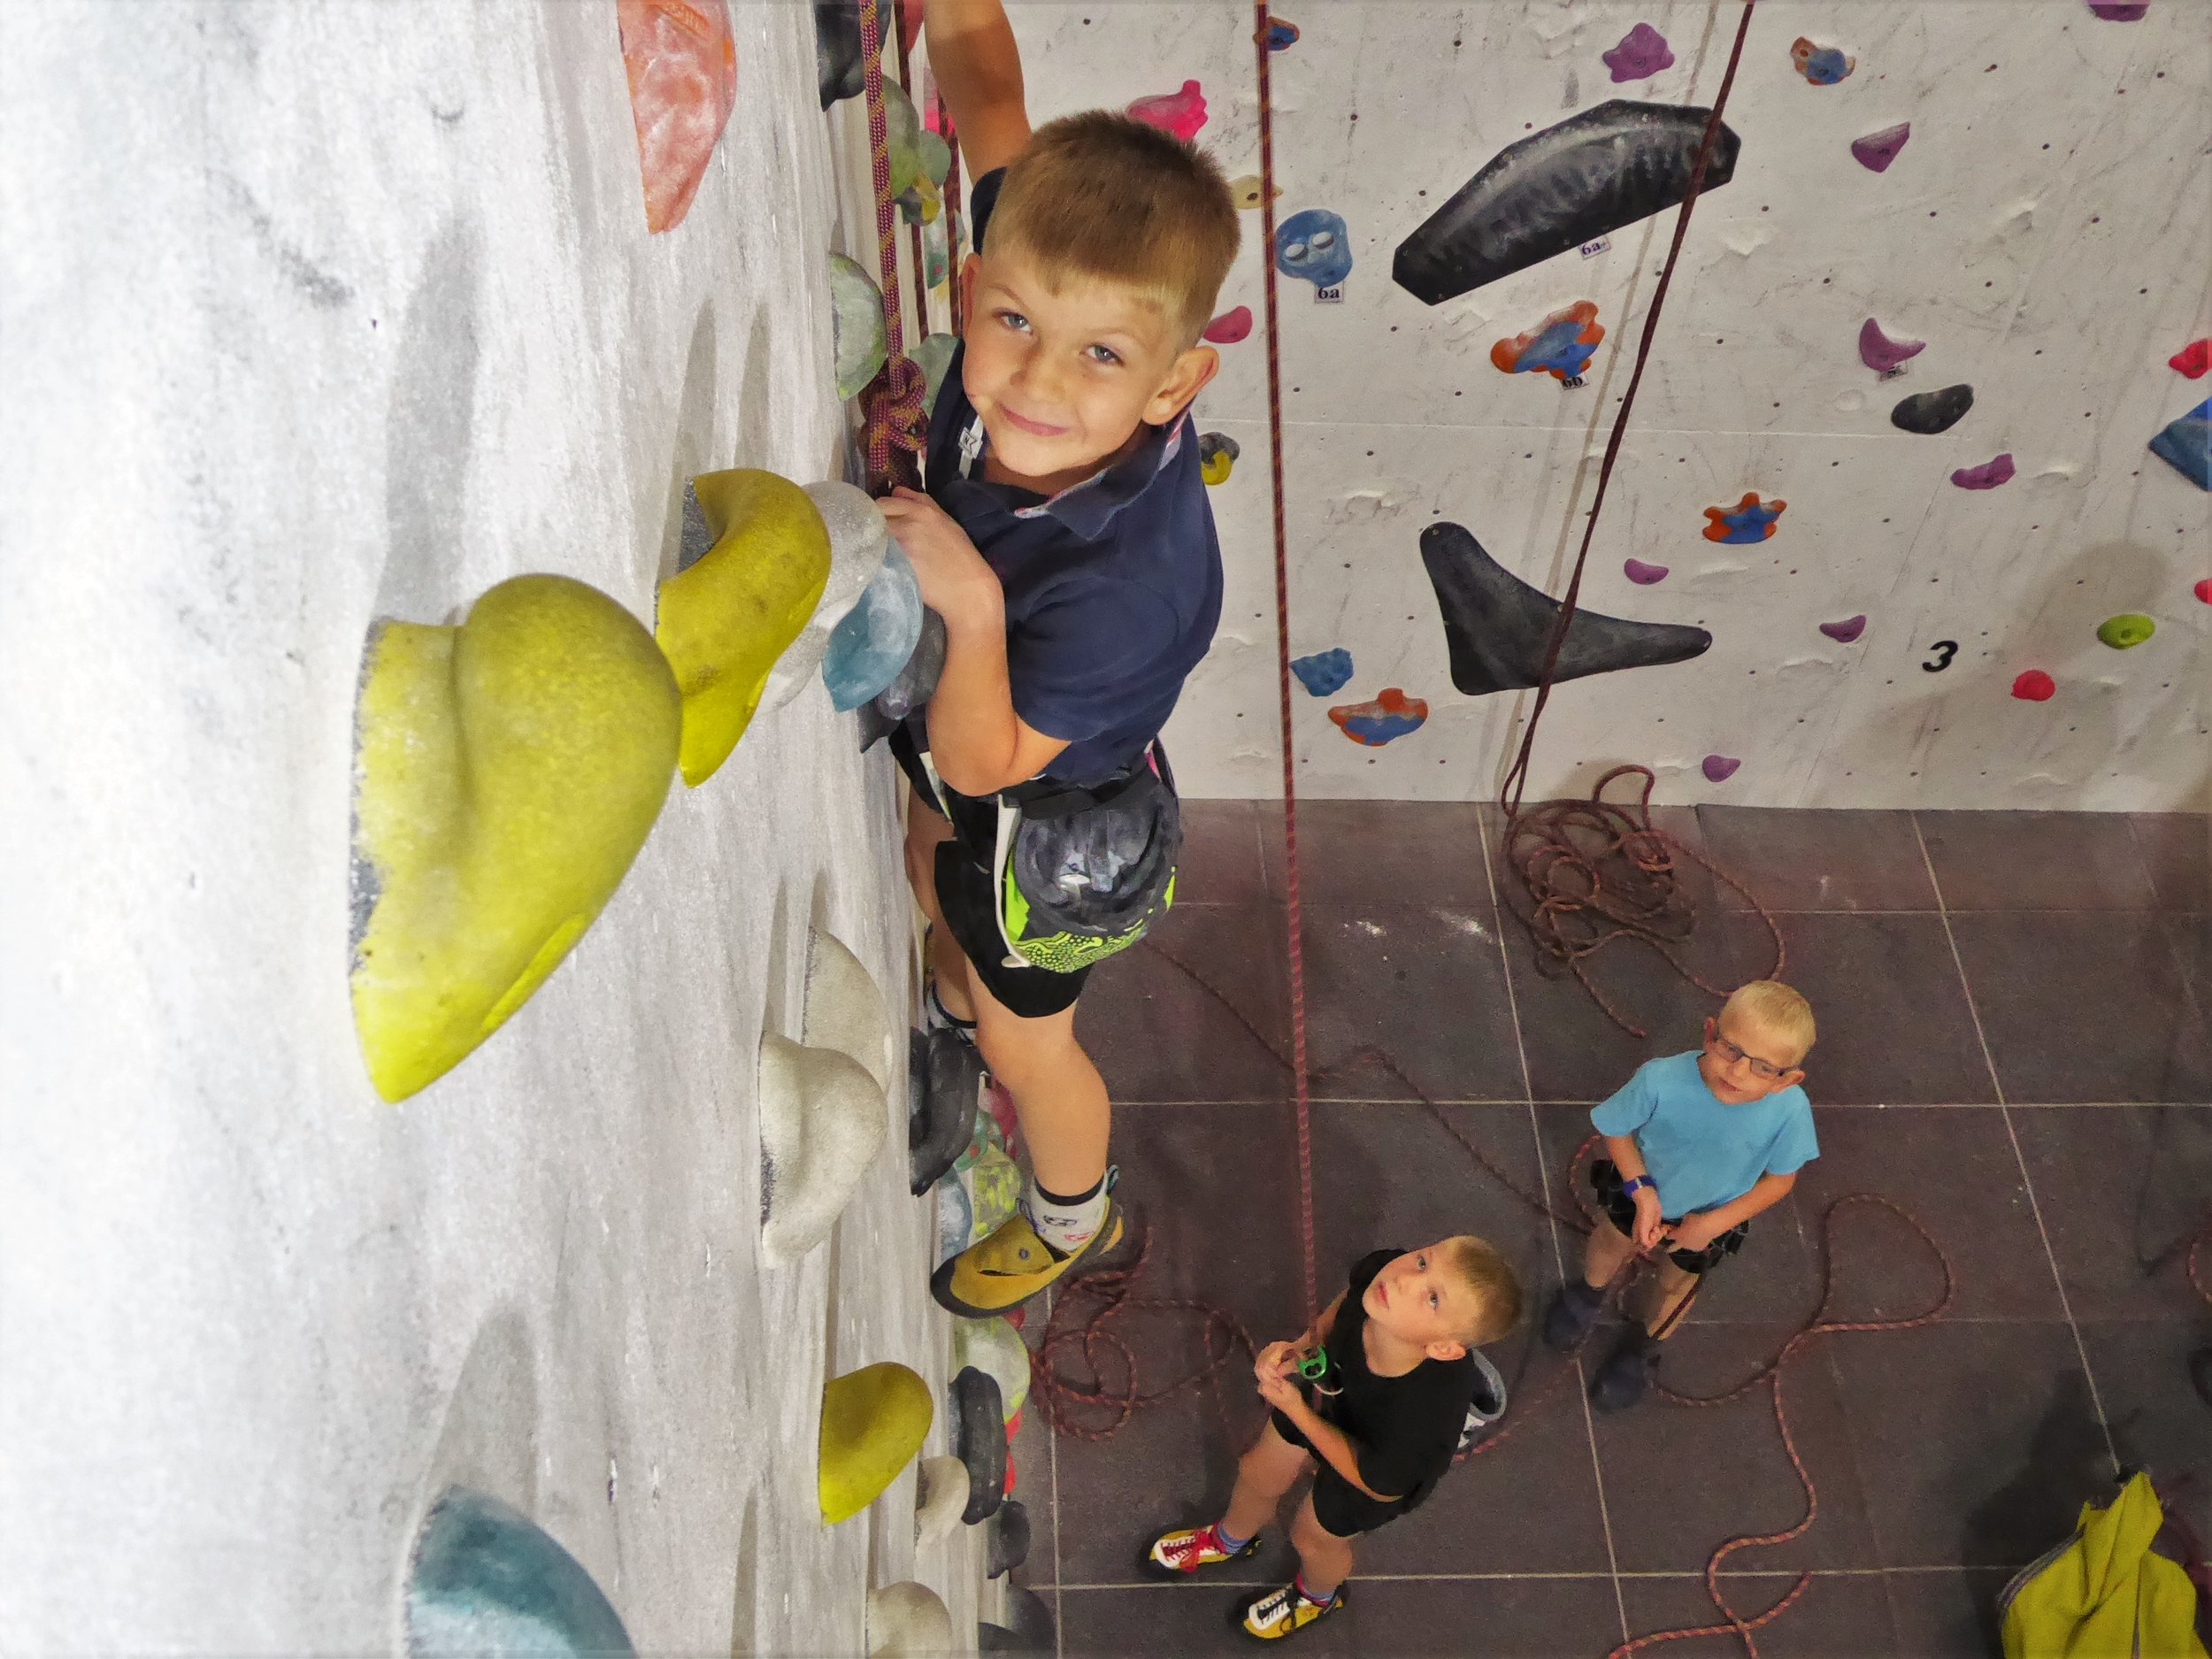 Kids Holiday Climbing - £12 per SessionWe emphasise fun rather than teaching in these sessions, however climbers will still have to work in teams and help each other progressEvery week day during school holidays:10:15-11:45, 12:15-13:45, 14:00-15:30